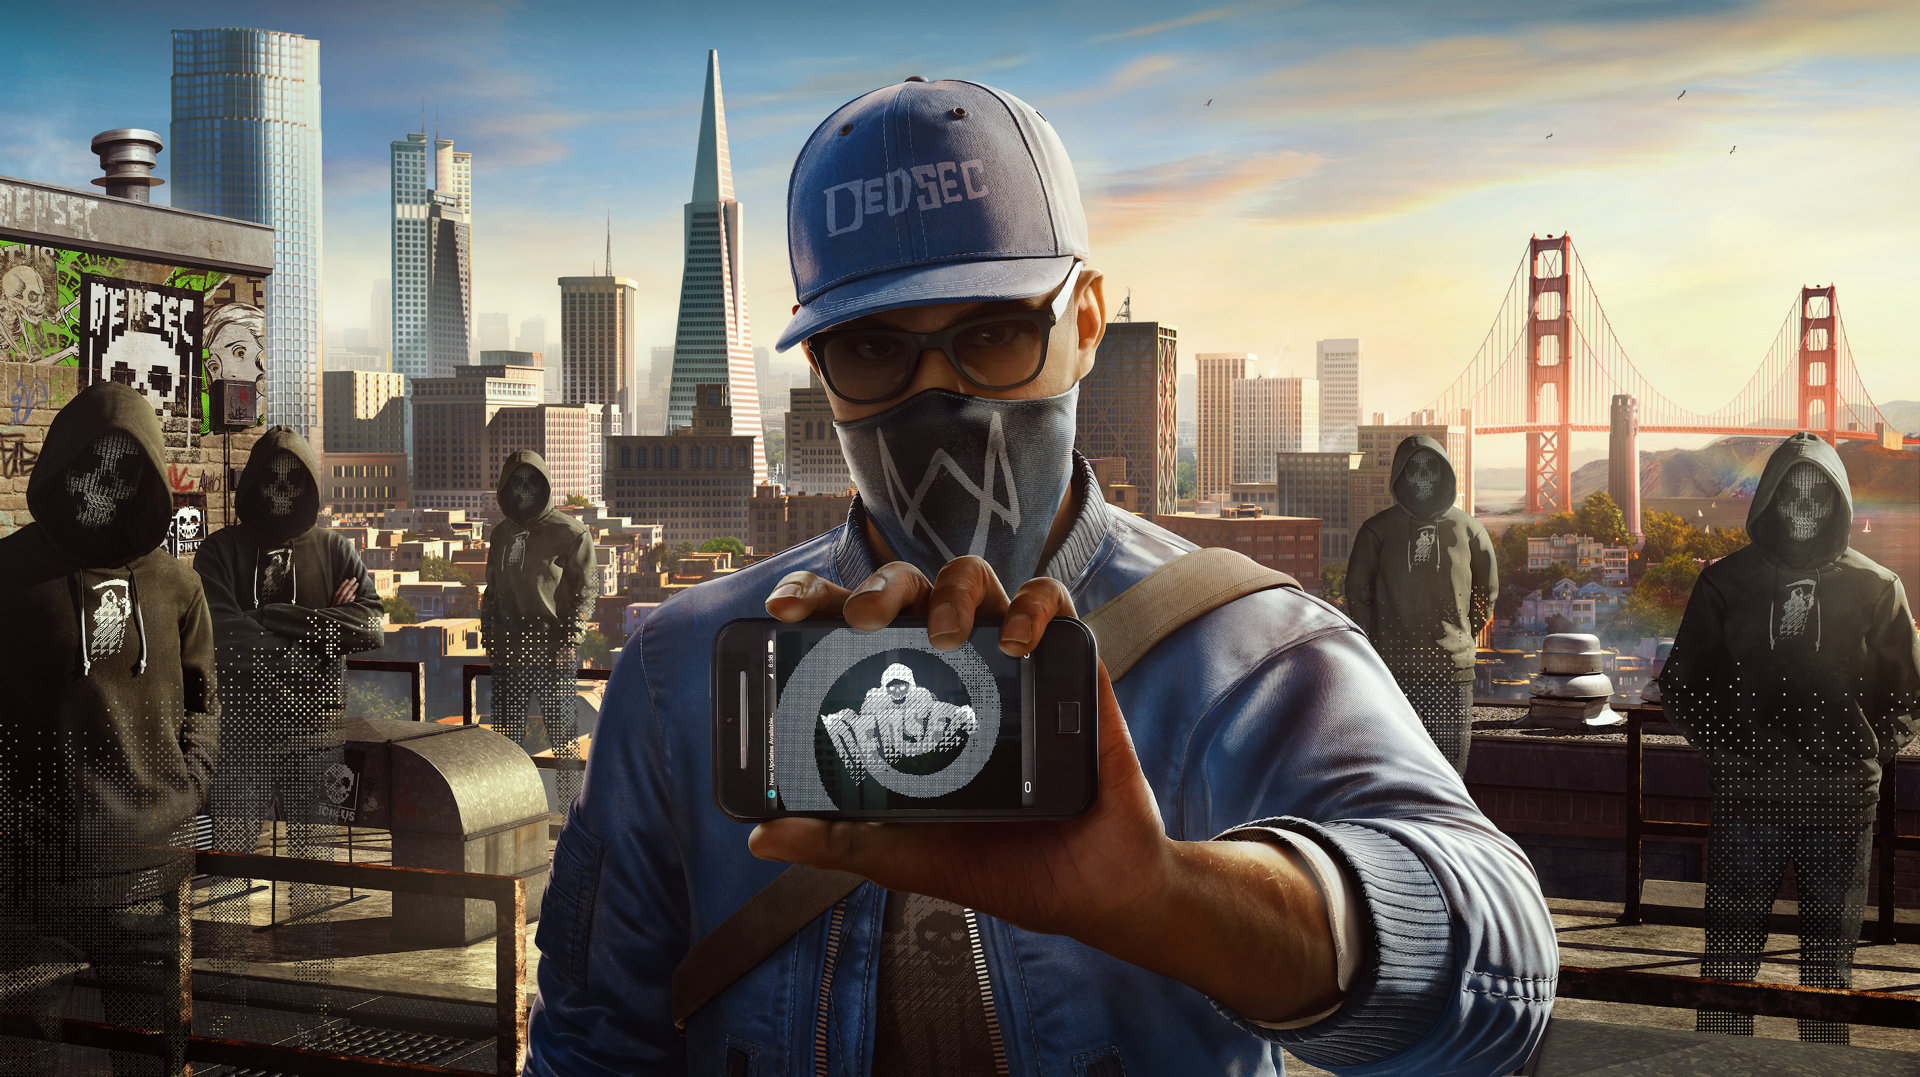 watch-dogs-2-background-art-01-ps4-us-21